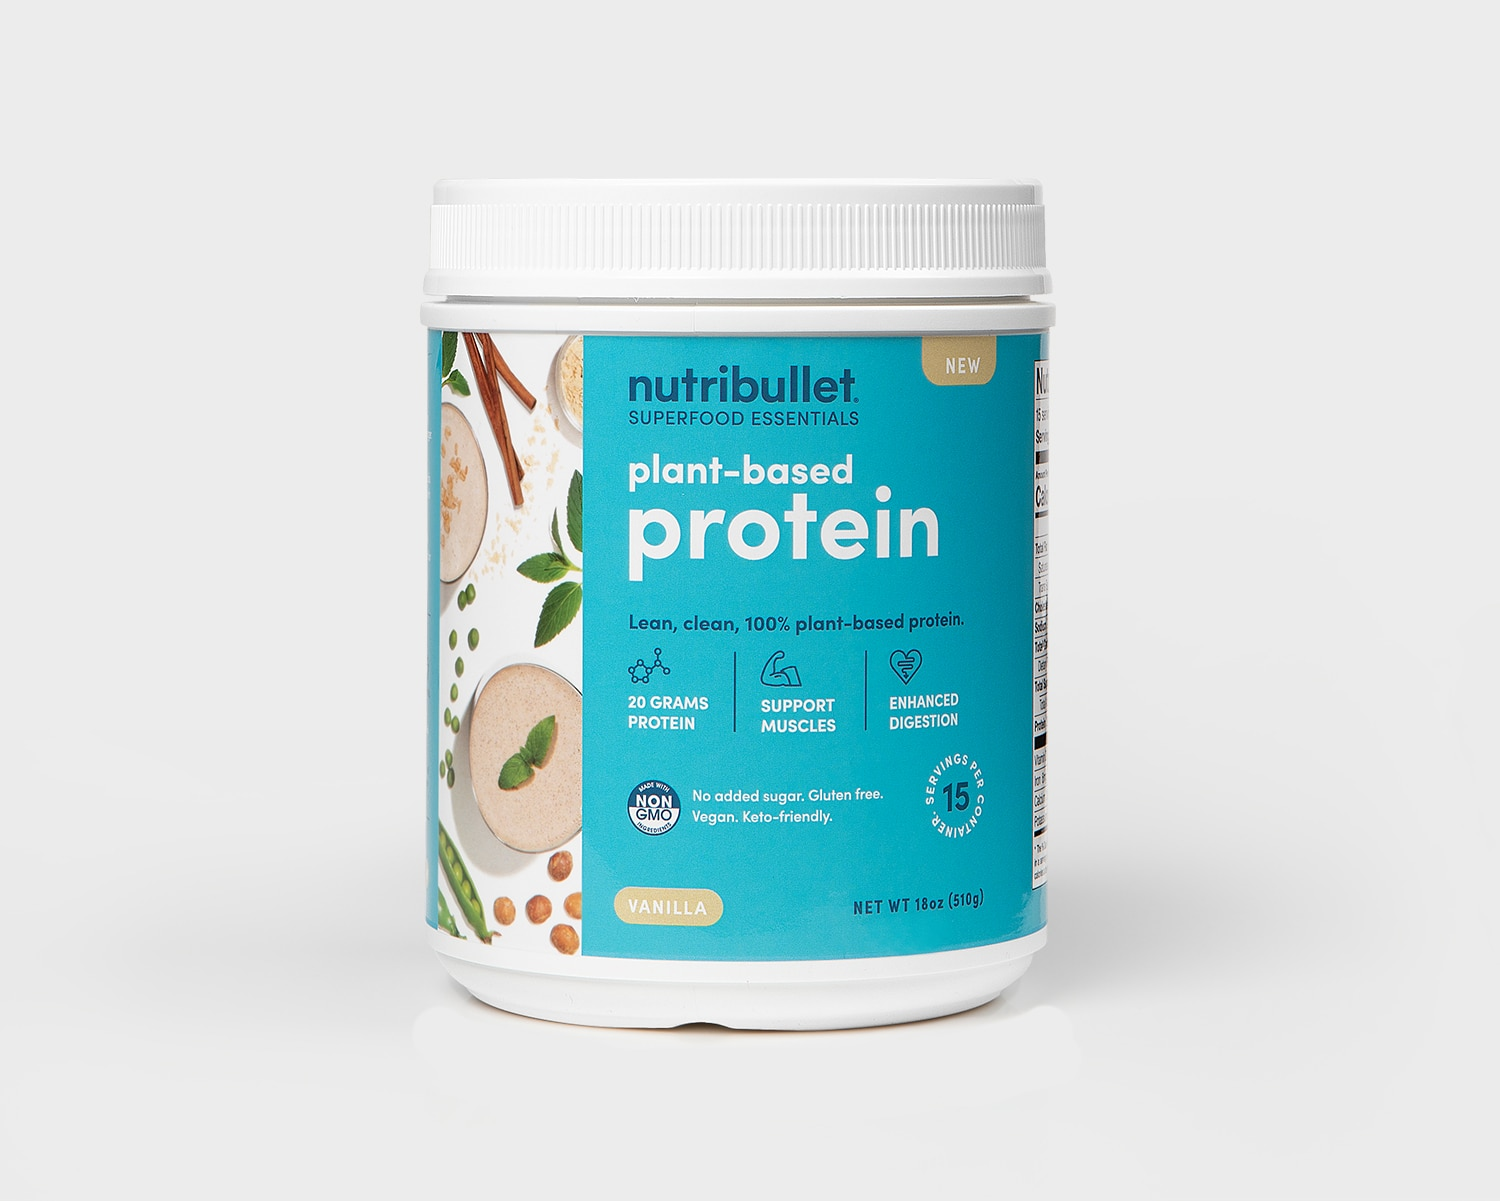 Product preview 1 of 3. Thumbnail nutribullet Plant Based Protein tub vanilla, 15 servings on blue label with vegetables and smoothies